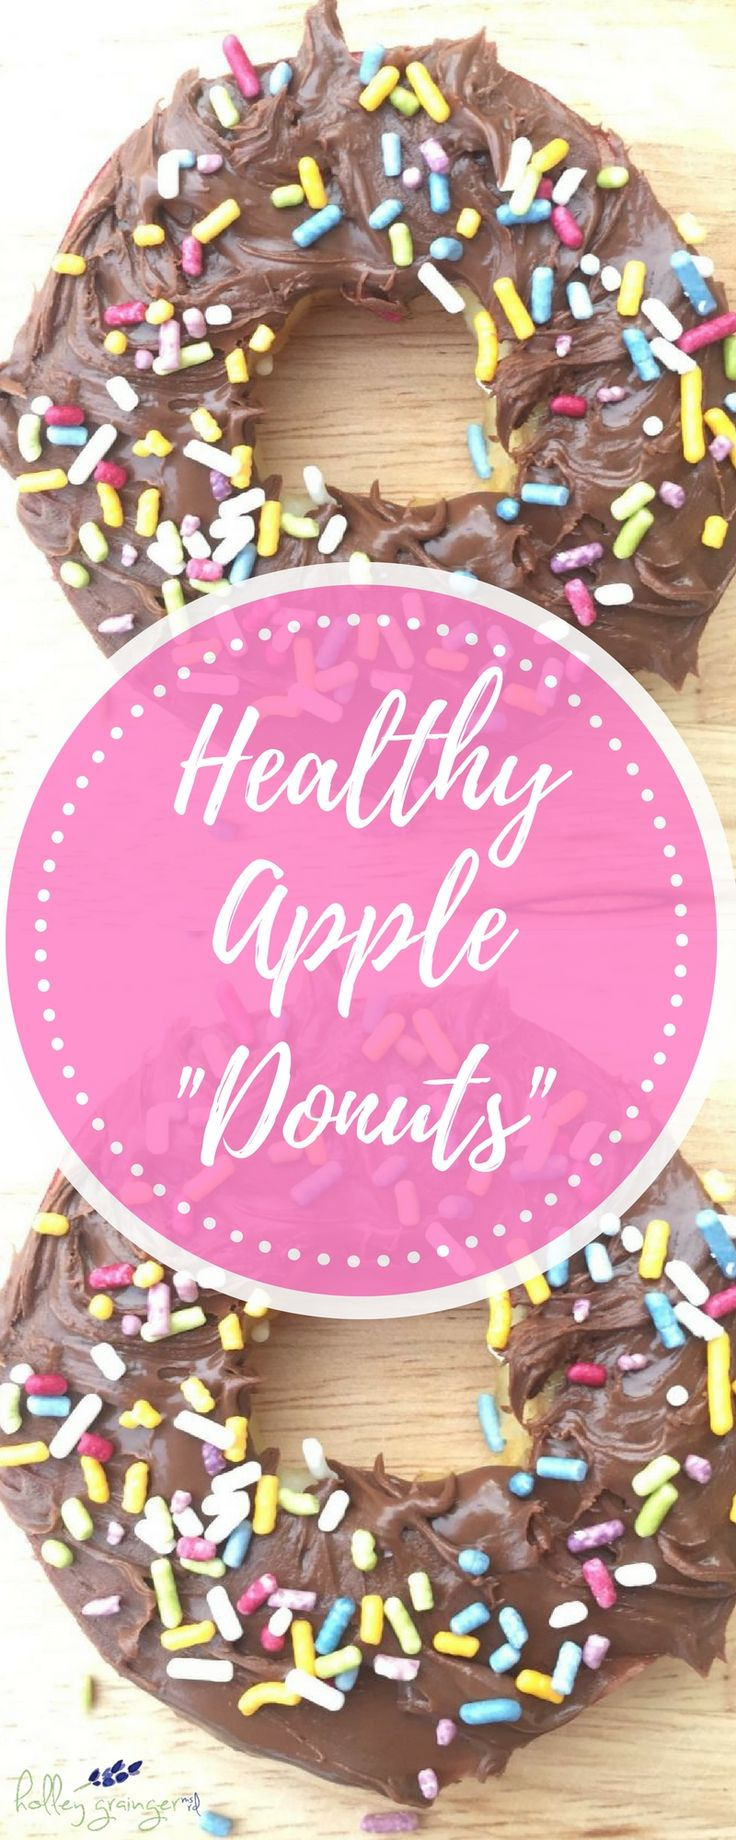 """Is it possible to make donuts even more fun and delicious? Ellie, Frances and I say YES it is! Watch and we'll show you how to make our yummy Apple Donuts. They're simple, can be customized to include your favorite """"icing"""" and """"toppings,"""" and best of all fit any type of diet."""